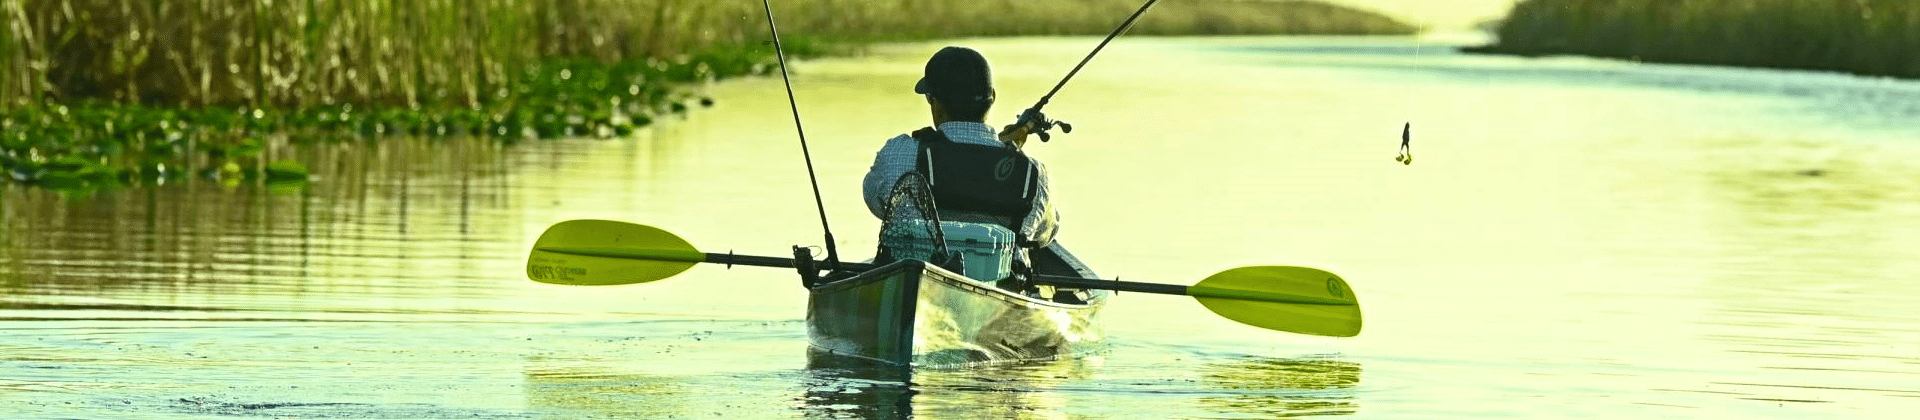 Best Fishing Canoes Reviewed in Detail